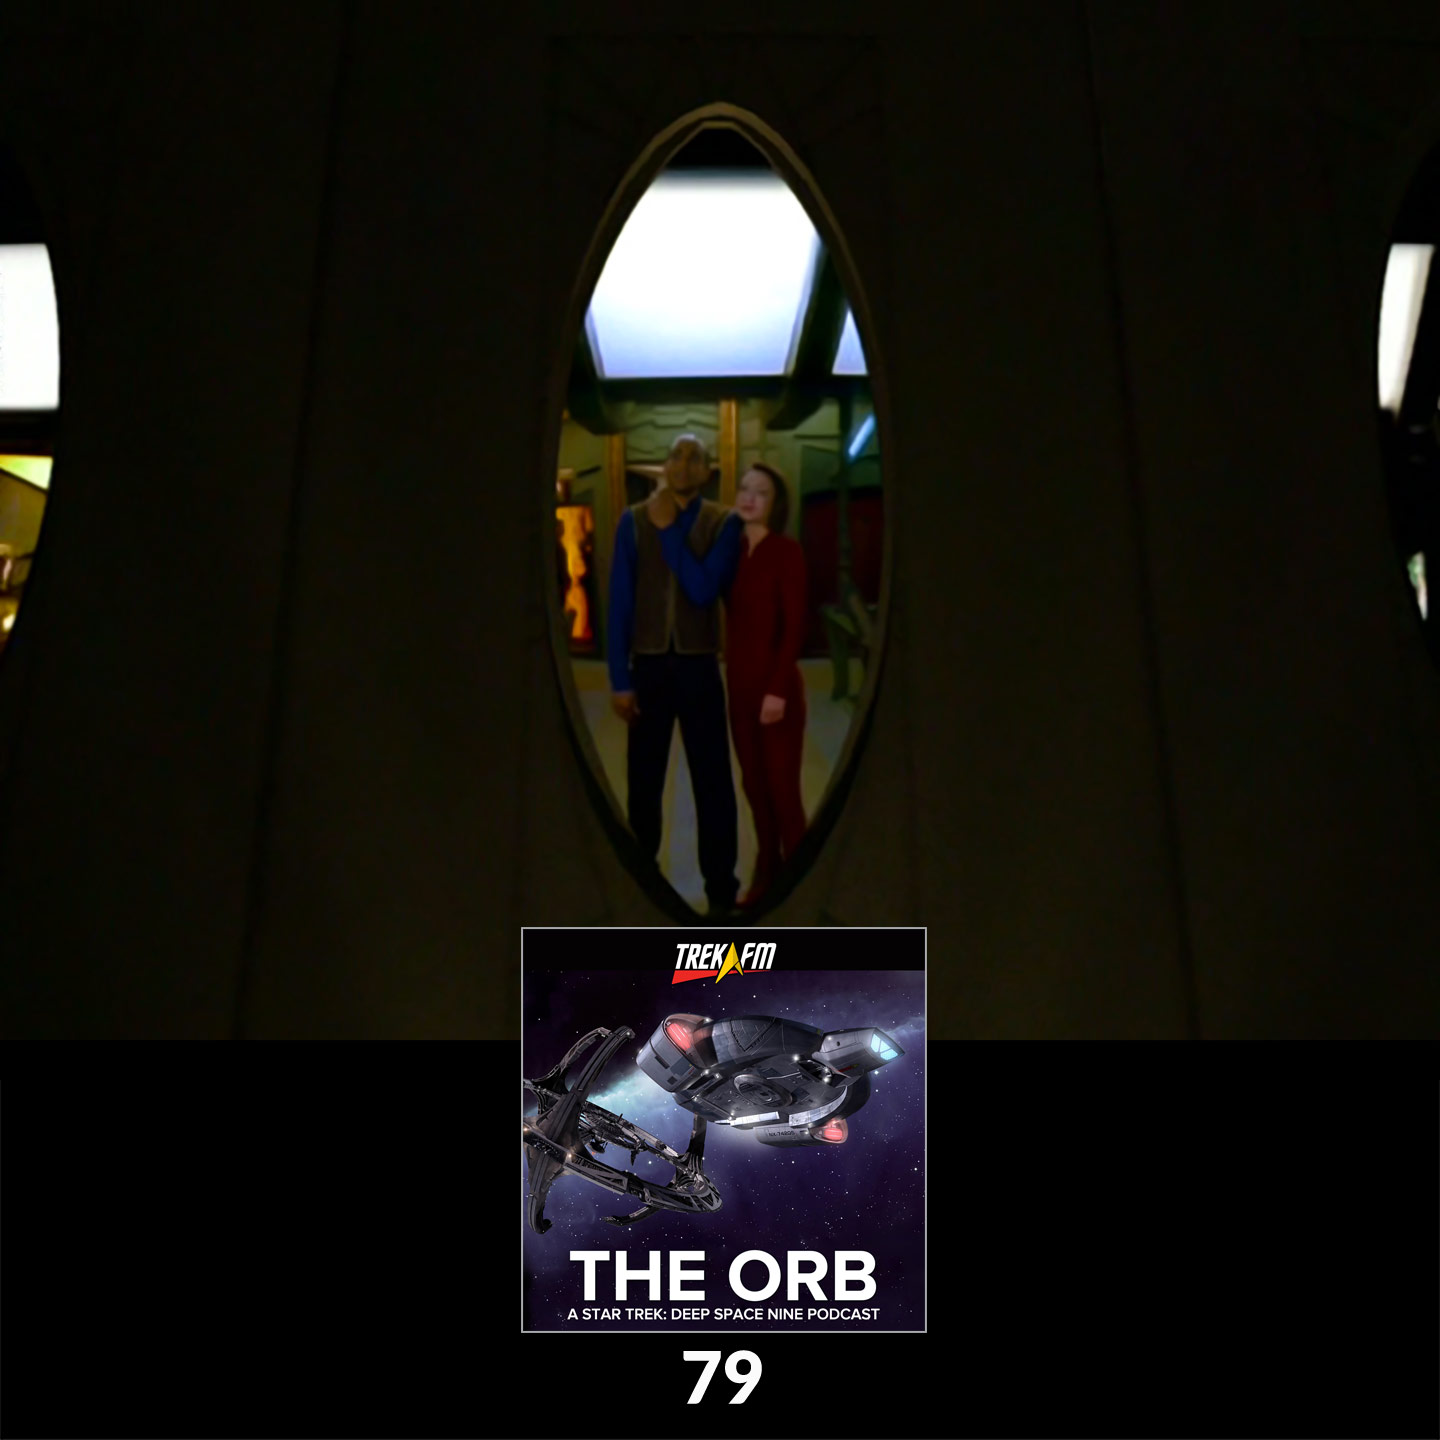 The Orb 79: Your Time of Trial Has Ended